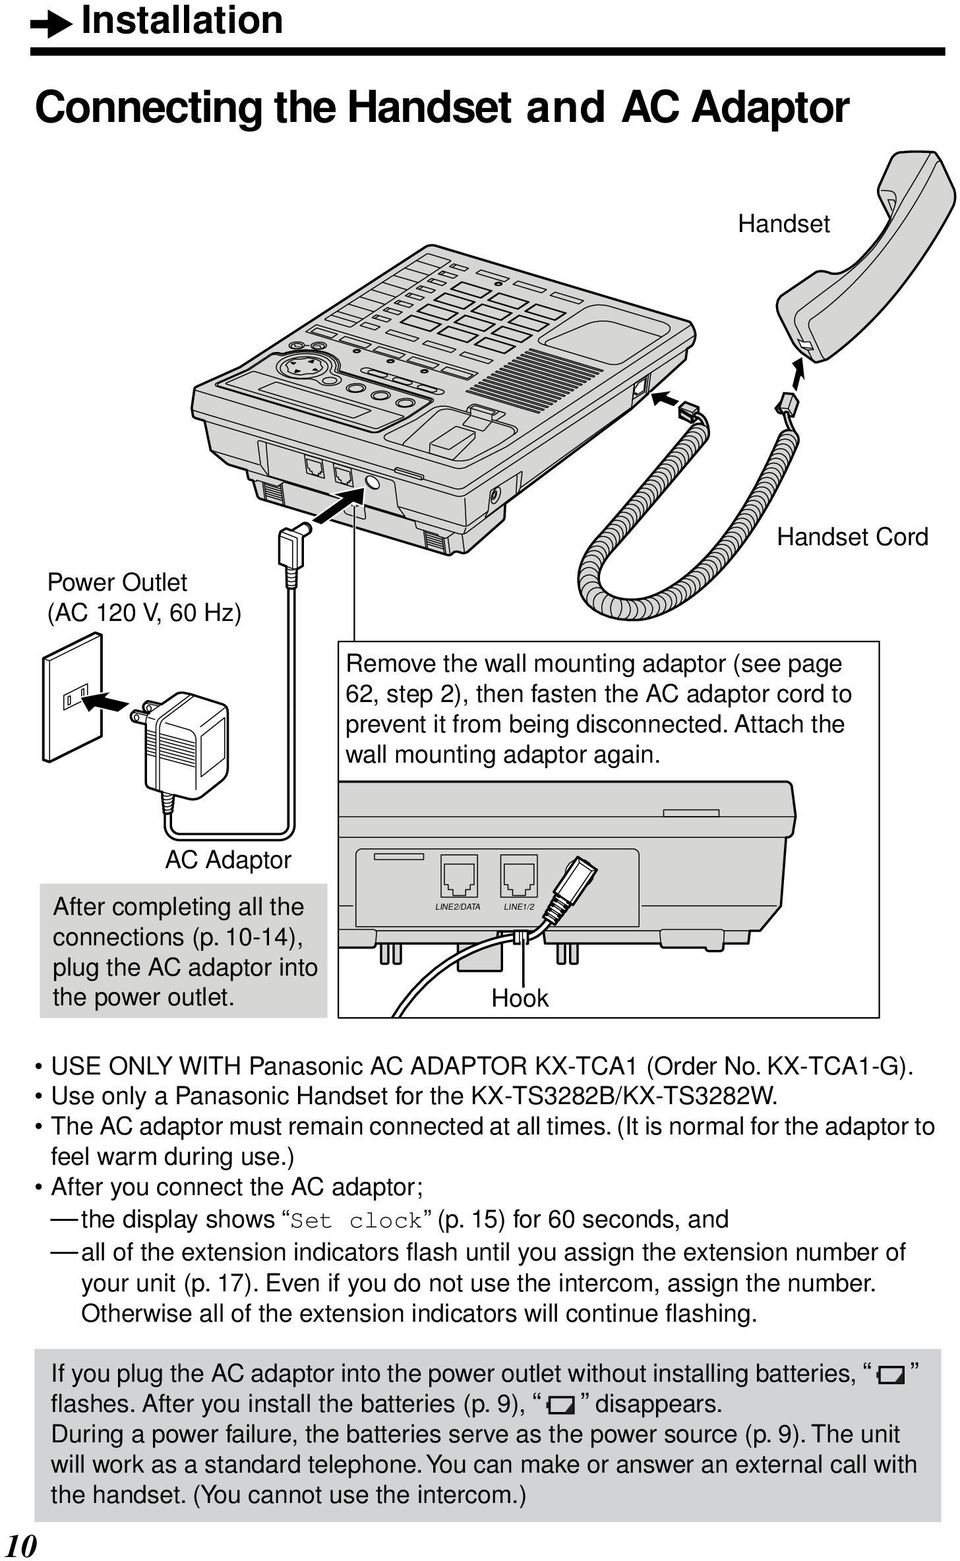 0-4), plug the AC AC adaptor Adaptorinto the power outlet. LINE/DATA LINE/ Hook 0 USE ONLY WITH Panasonic AC ADAPTOR KX-TCA (Order No. KX-TCA-G). Use only a Panasonic Handset for the KX-TS8B/KX-TS8W.